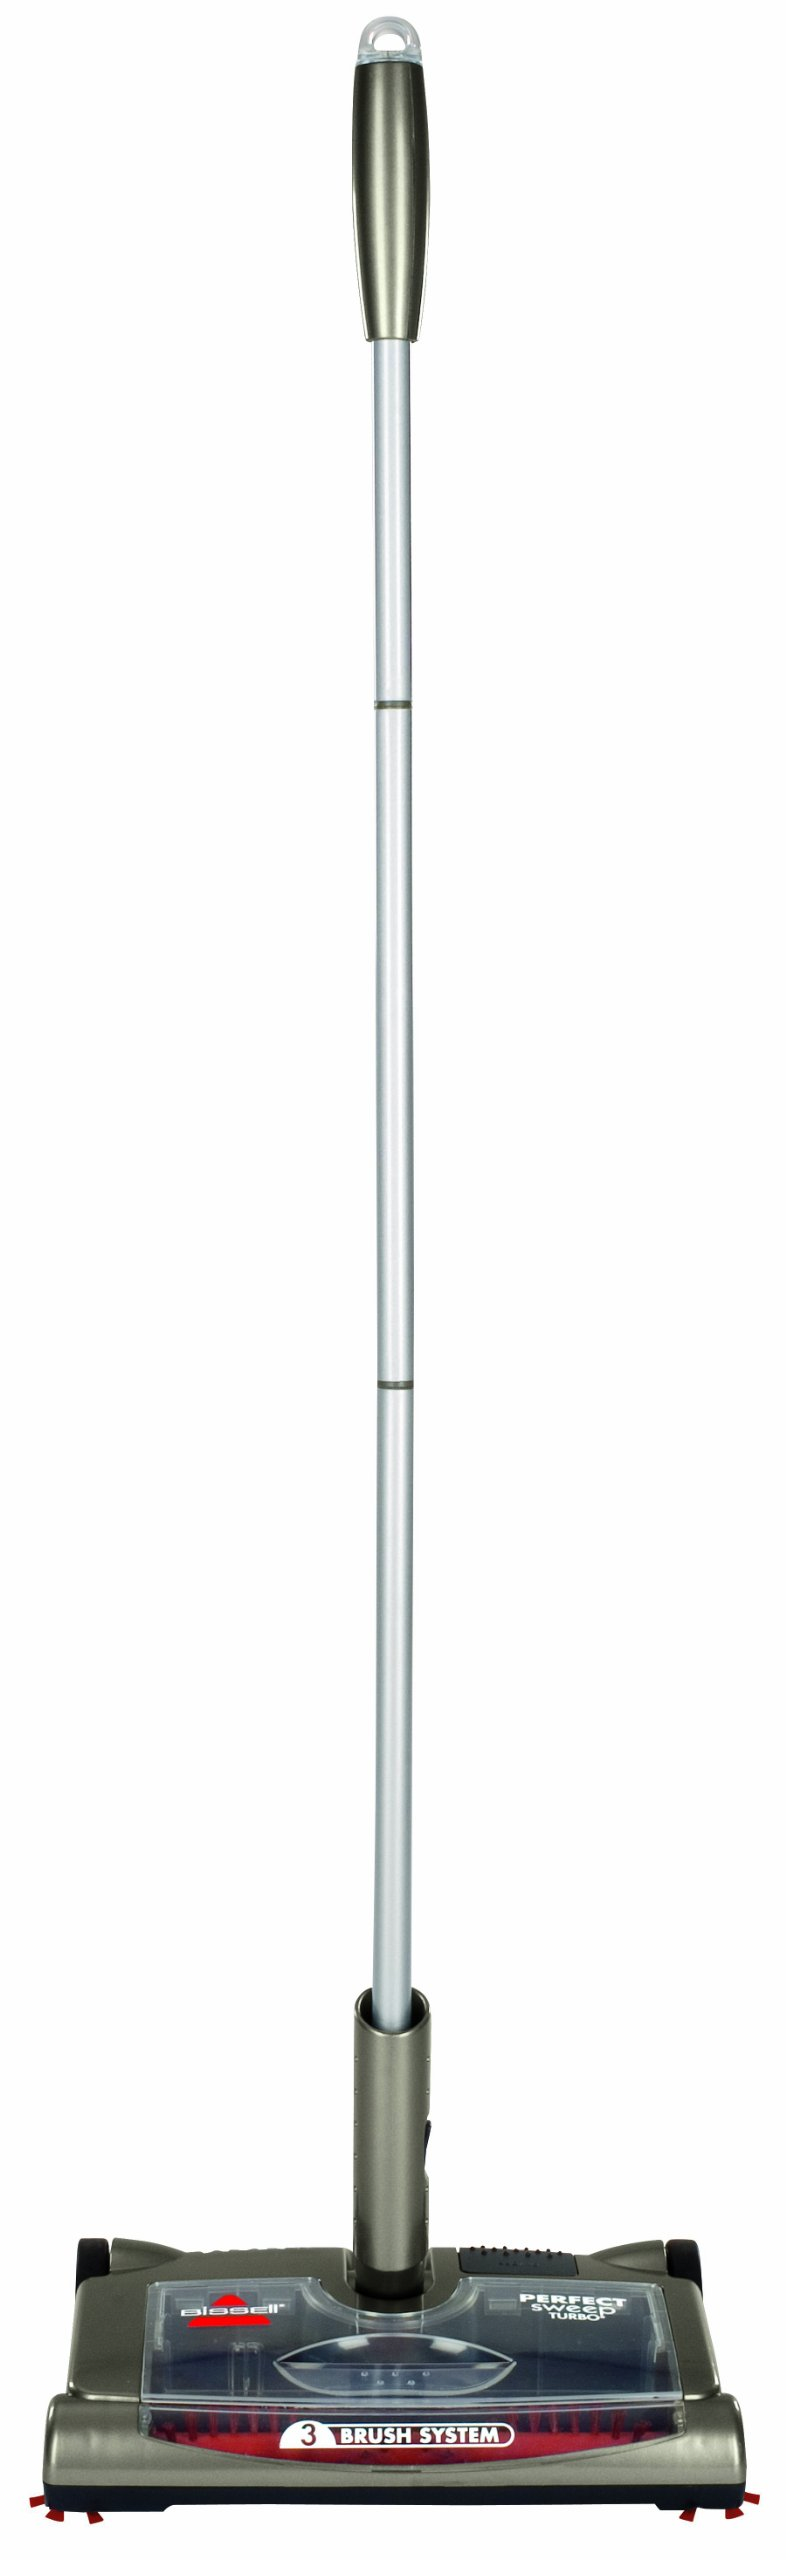 BISSELL Perfect Sweep Turbo Cordless Rechargeable Sweeper, 2880A by Bissell